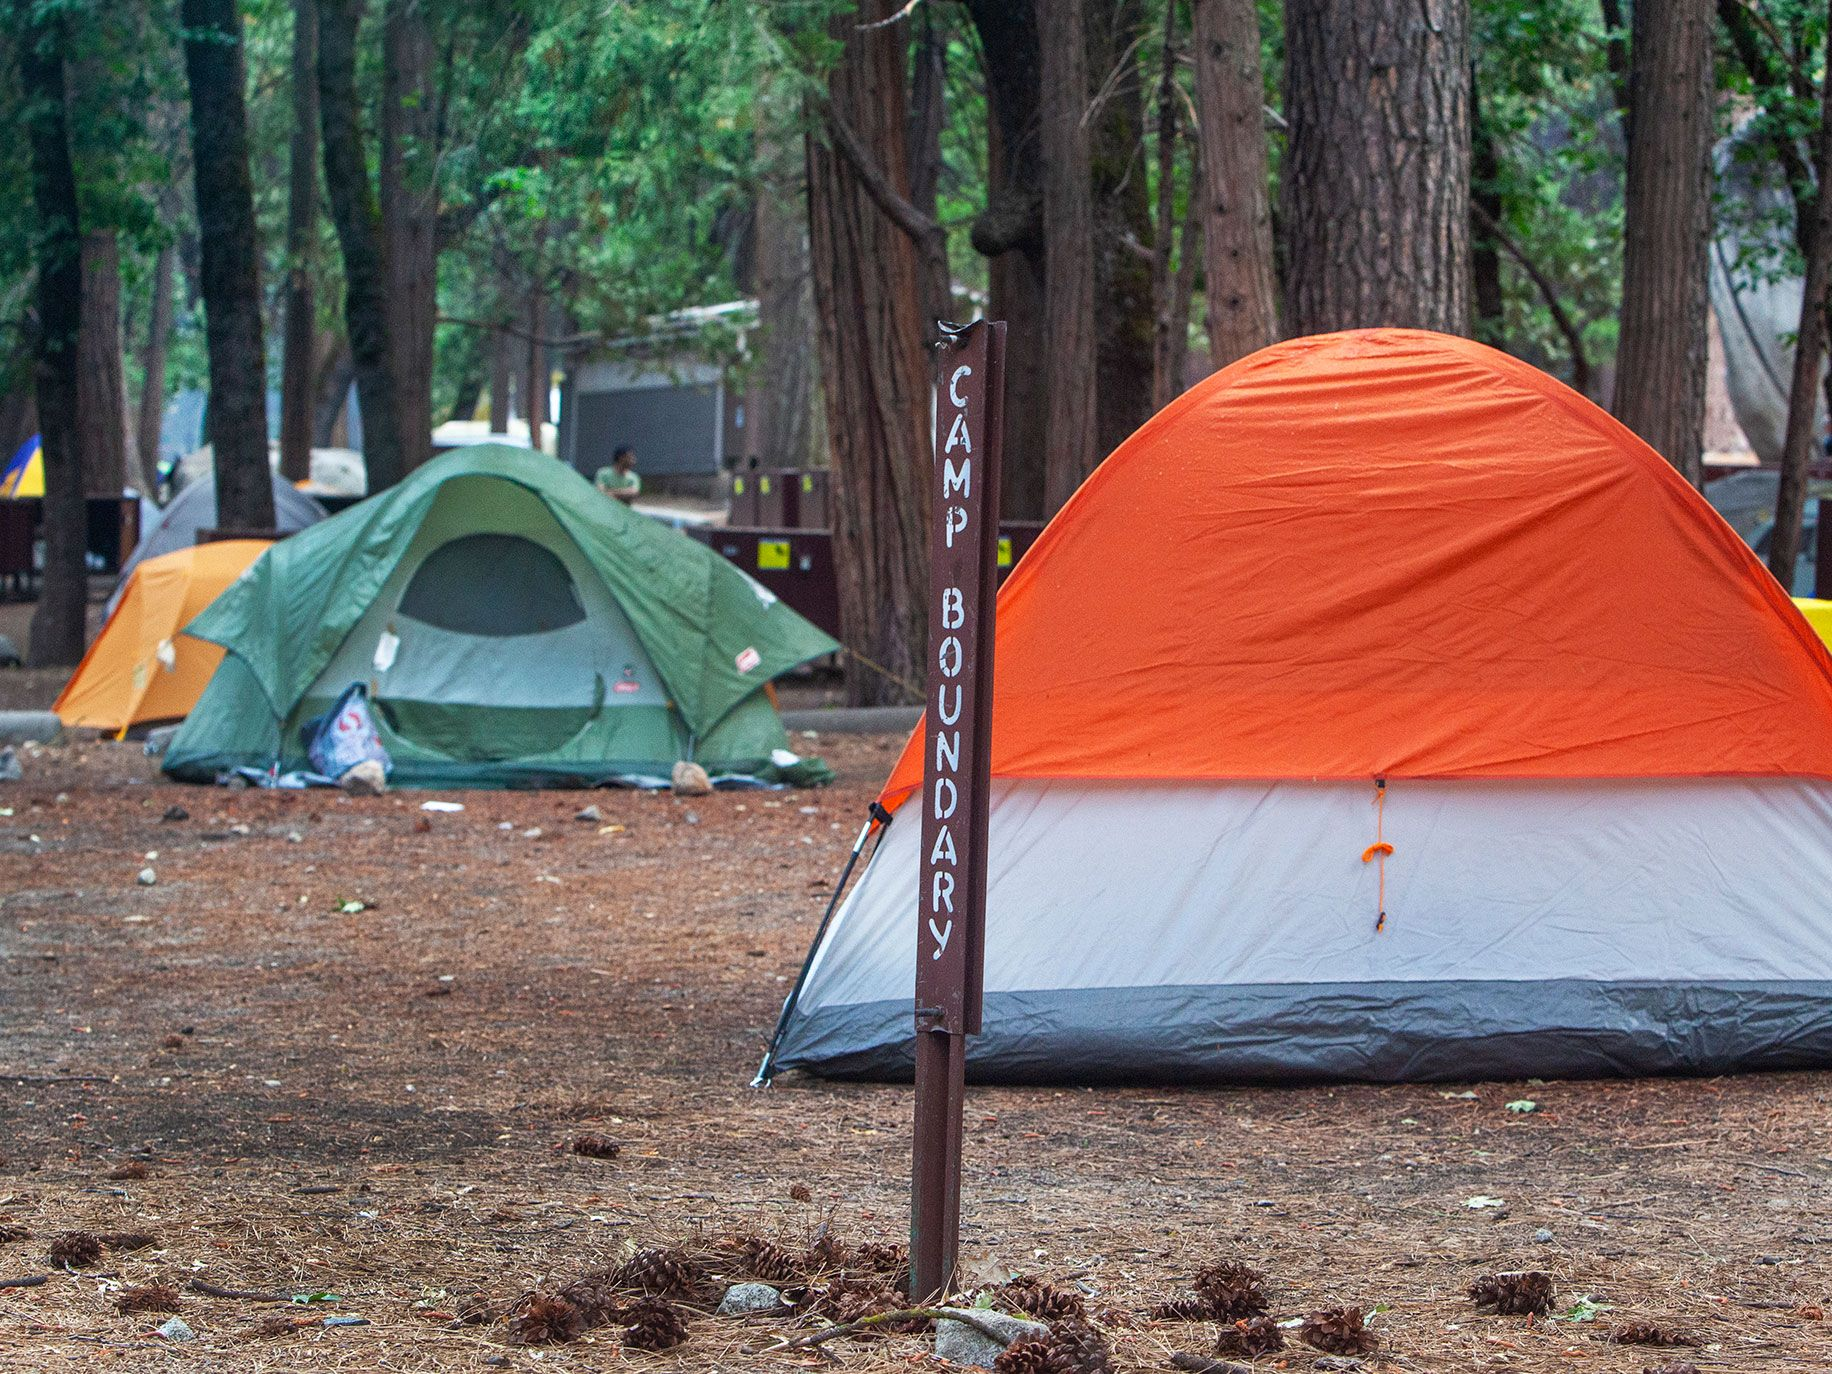 Yosemite's historic Camp 4 serves as a base for mountain climbers from all over the globe.